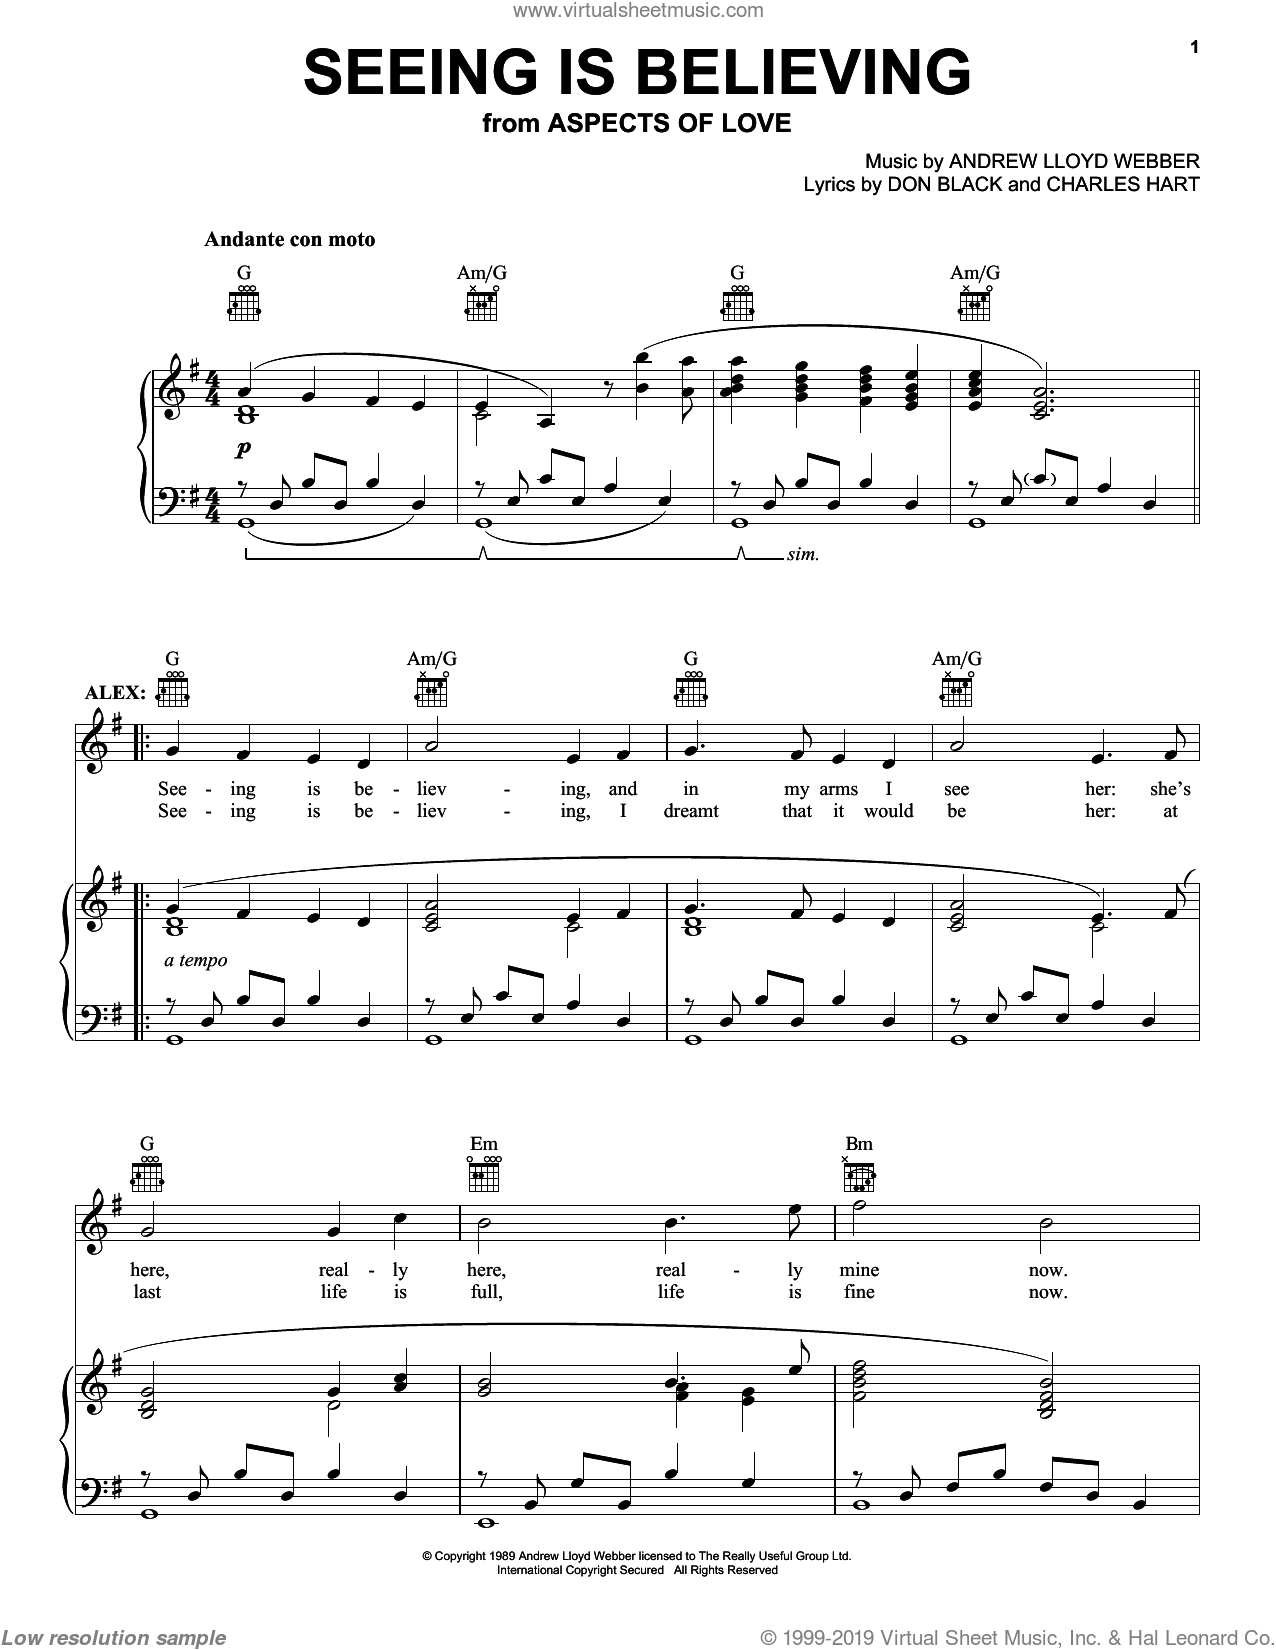 Seeing Is Believing sheet music for voice, piano or guitar by Don Black, Andrew Lloyd Webber and Charles Hart. Score Image Preview.